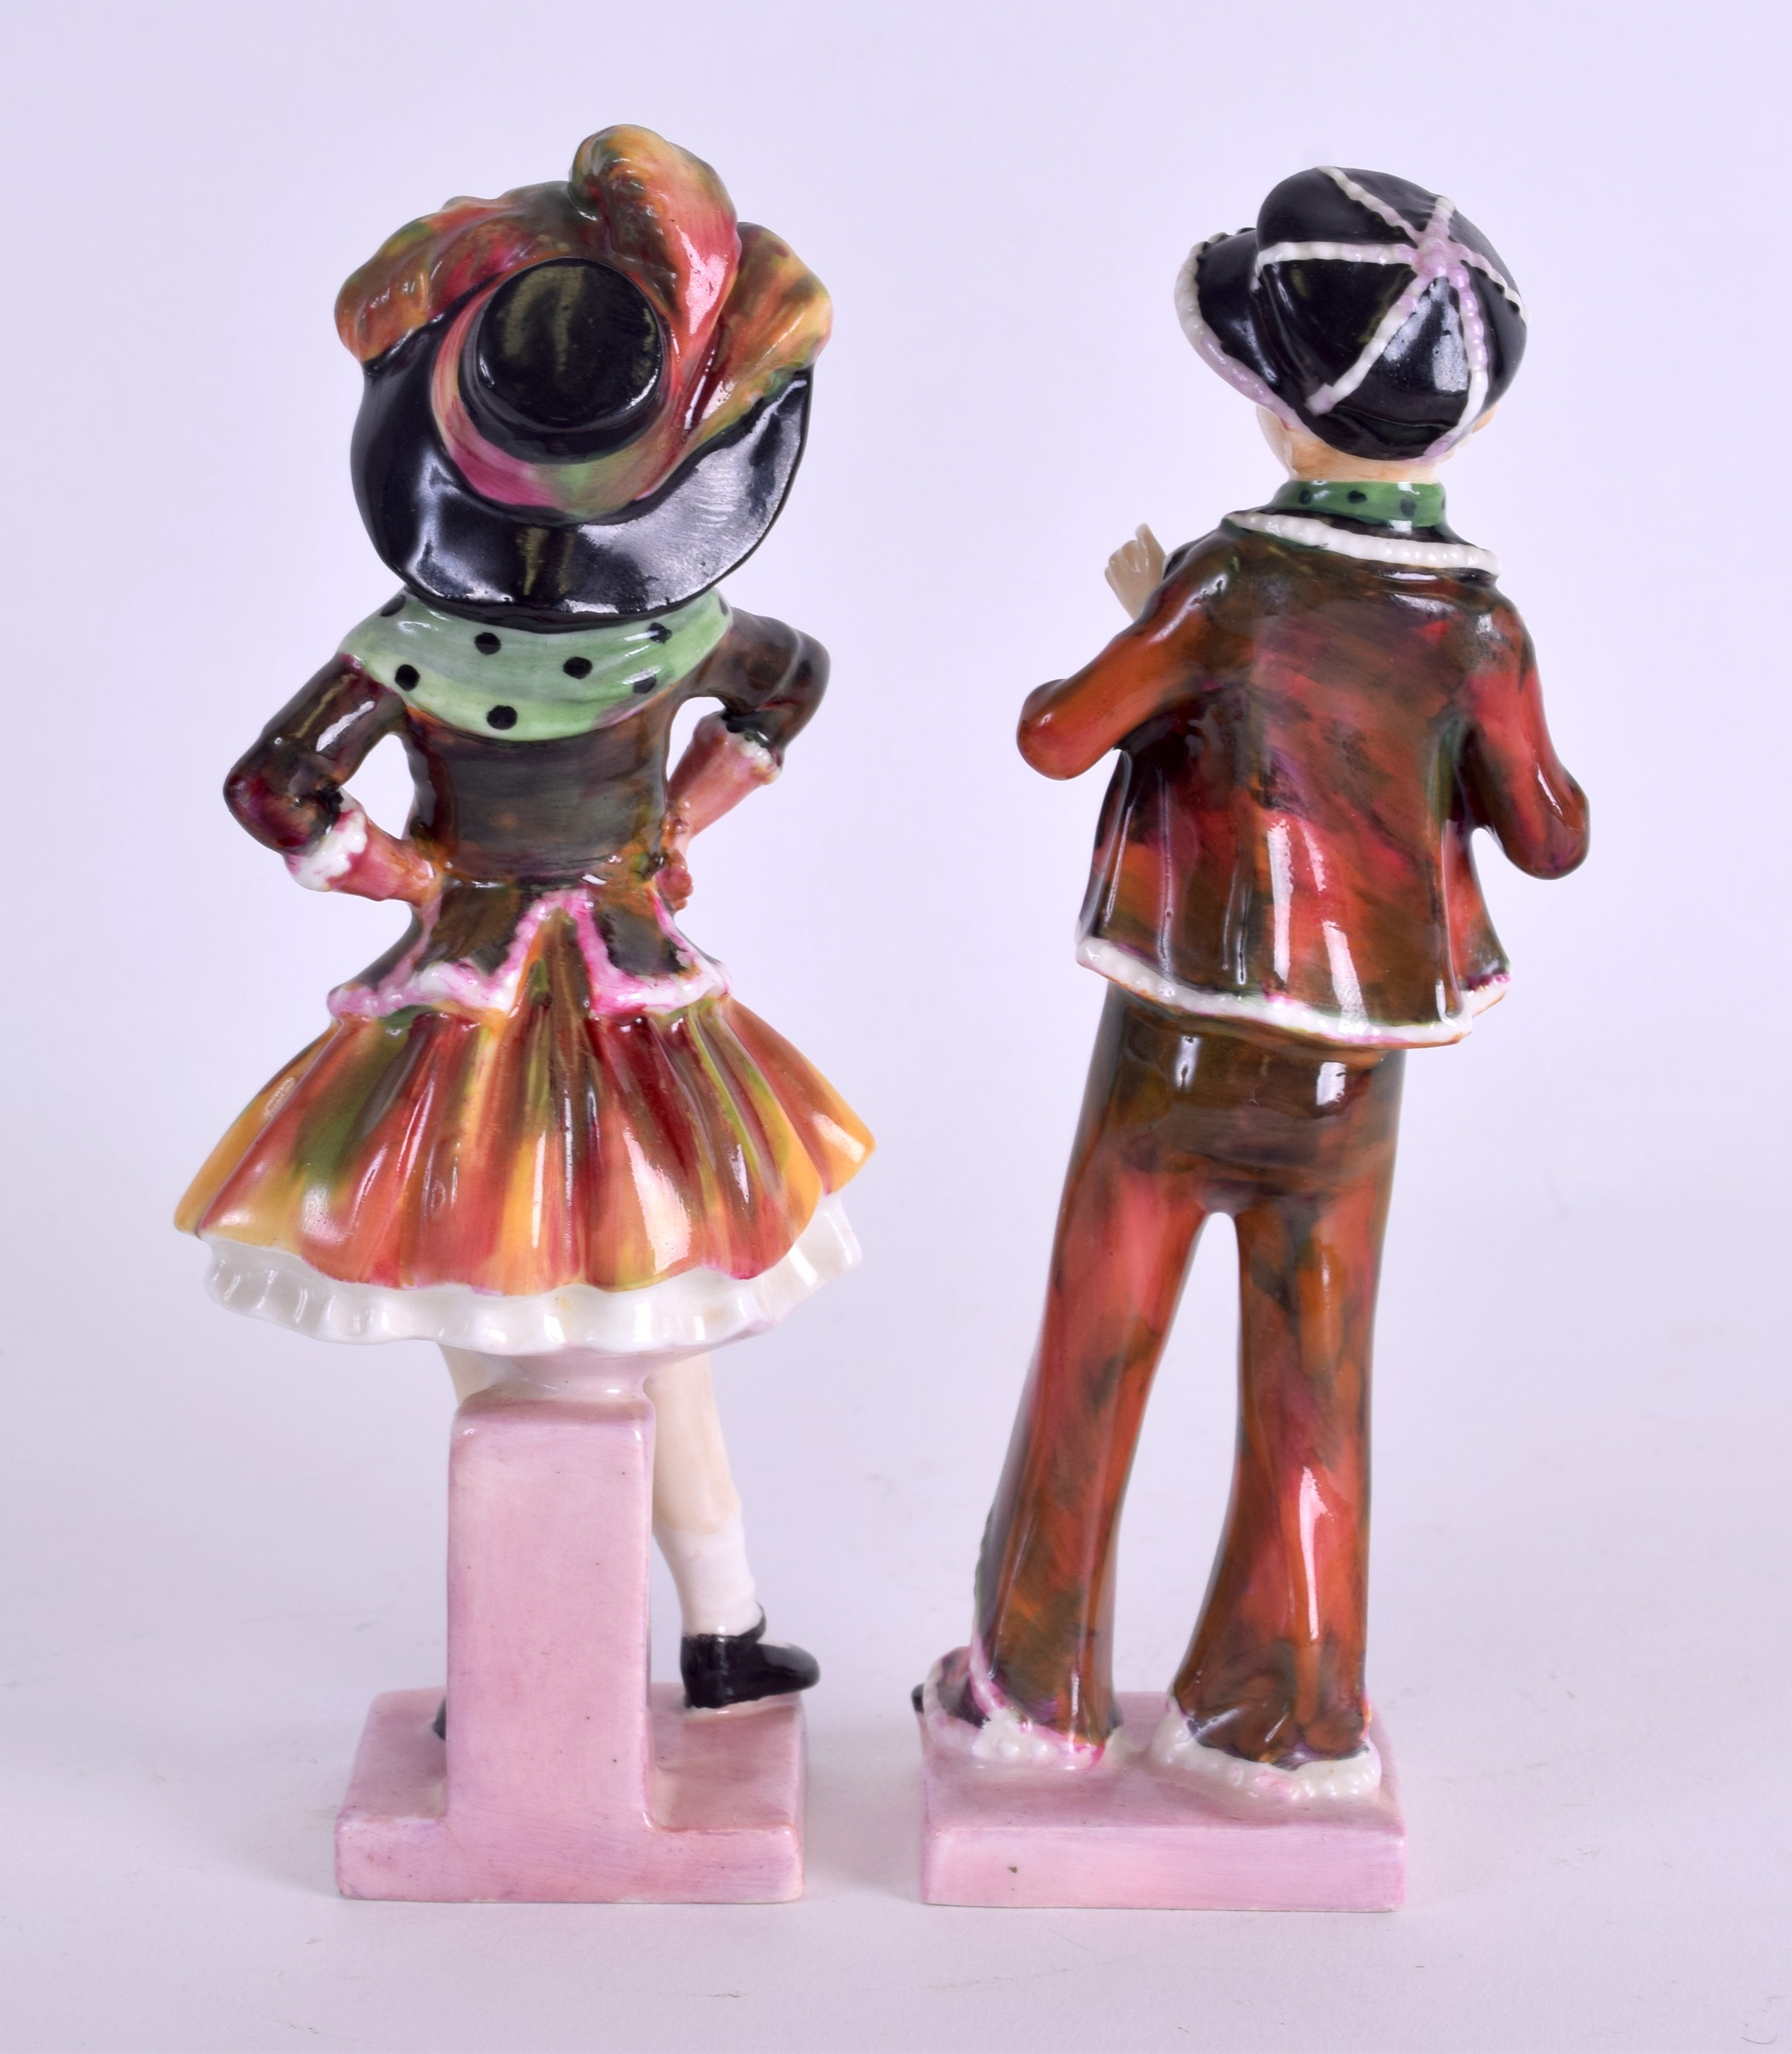 Lot 72 - A PAIR OF ROYAL DOULTON FIGURES 'PEARLY BOY & PEARLY GIRL' HN 1482 & 1483. 14 cm high.